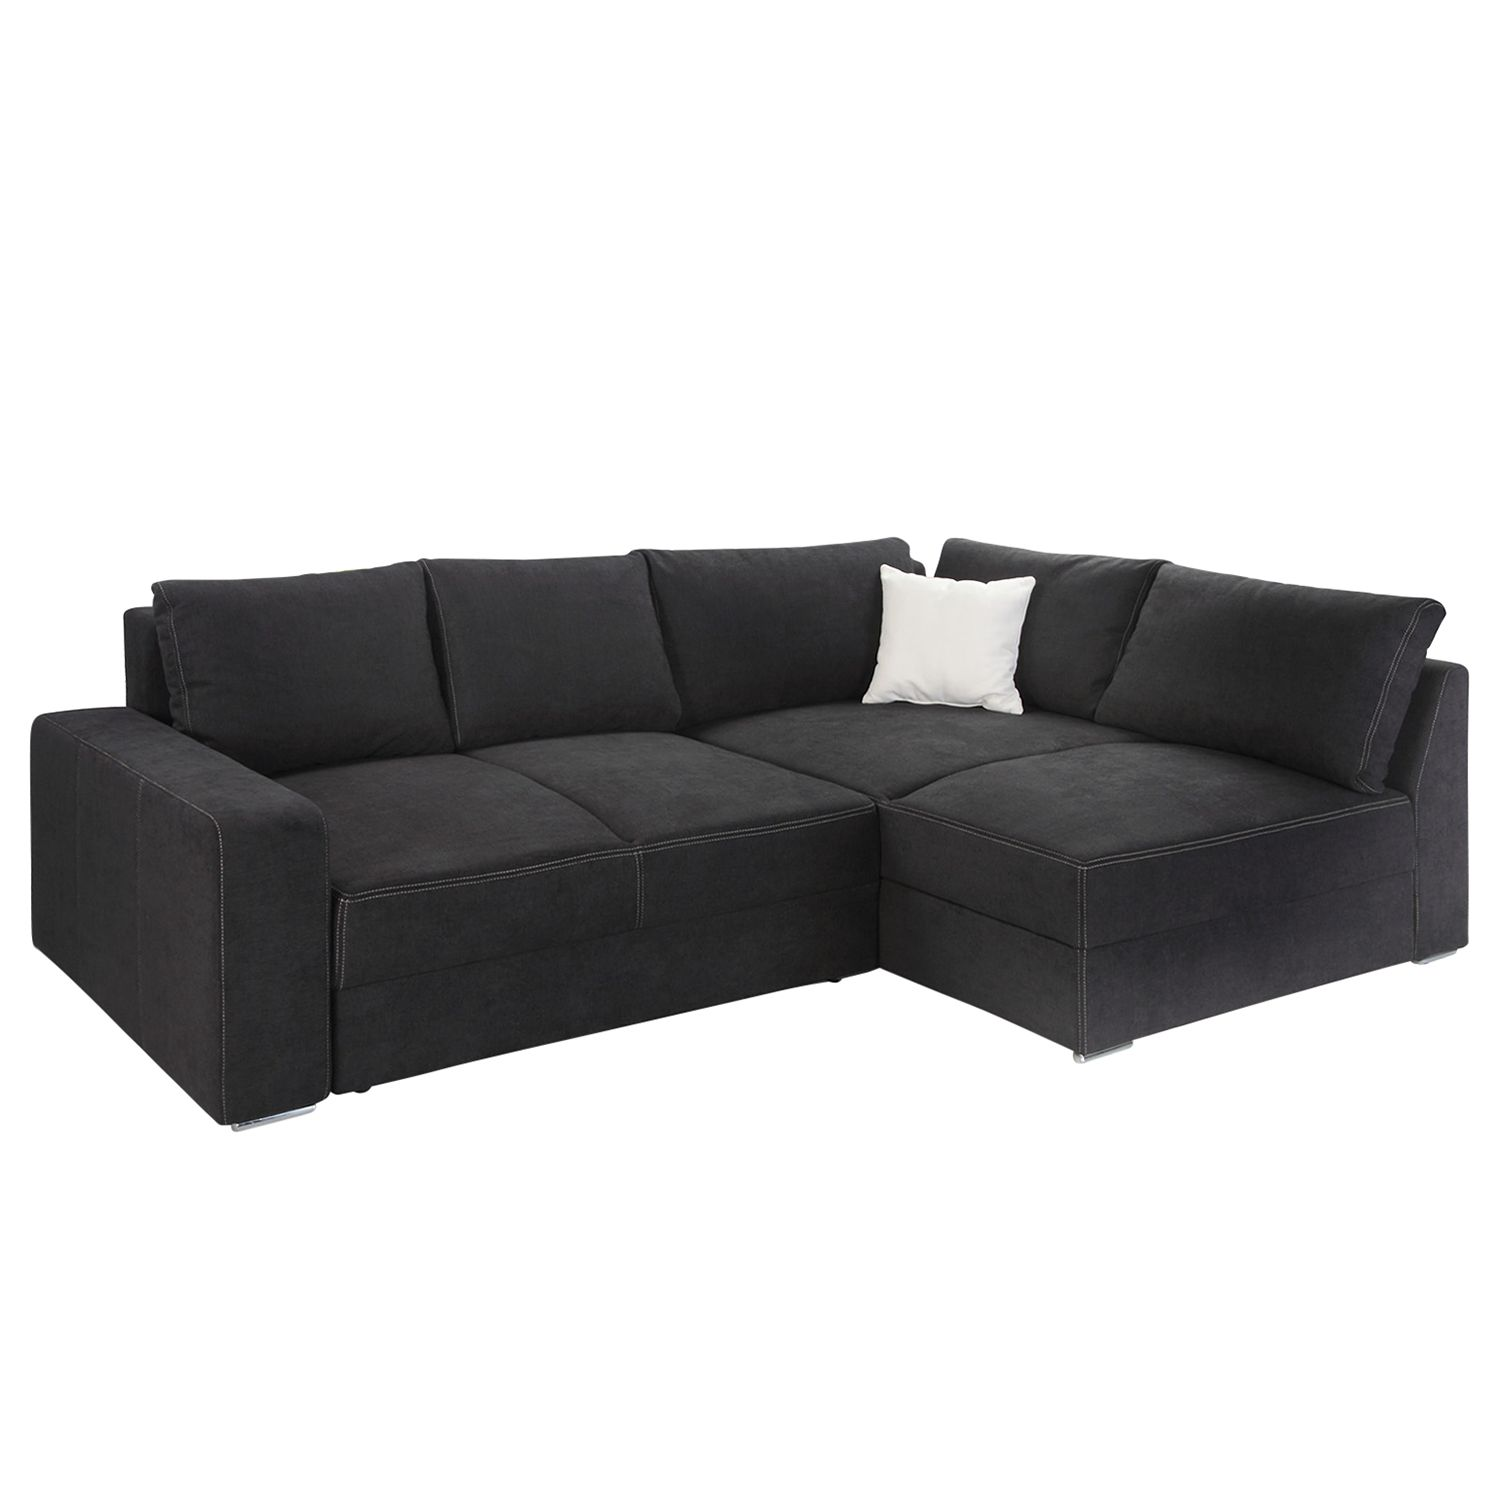 boxspring ecksofa esbjerg mit schlaffunktion beidseitig montierbar microfaser schwarz. Black Bedroom Furniture Sets. Home Design Ideas